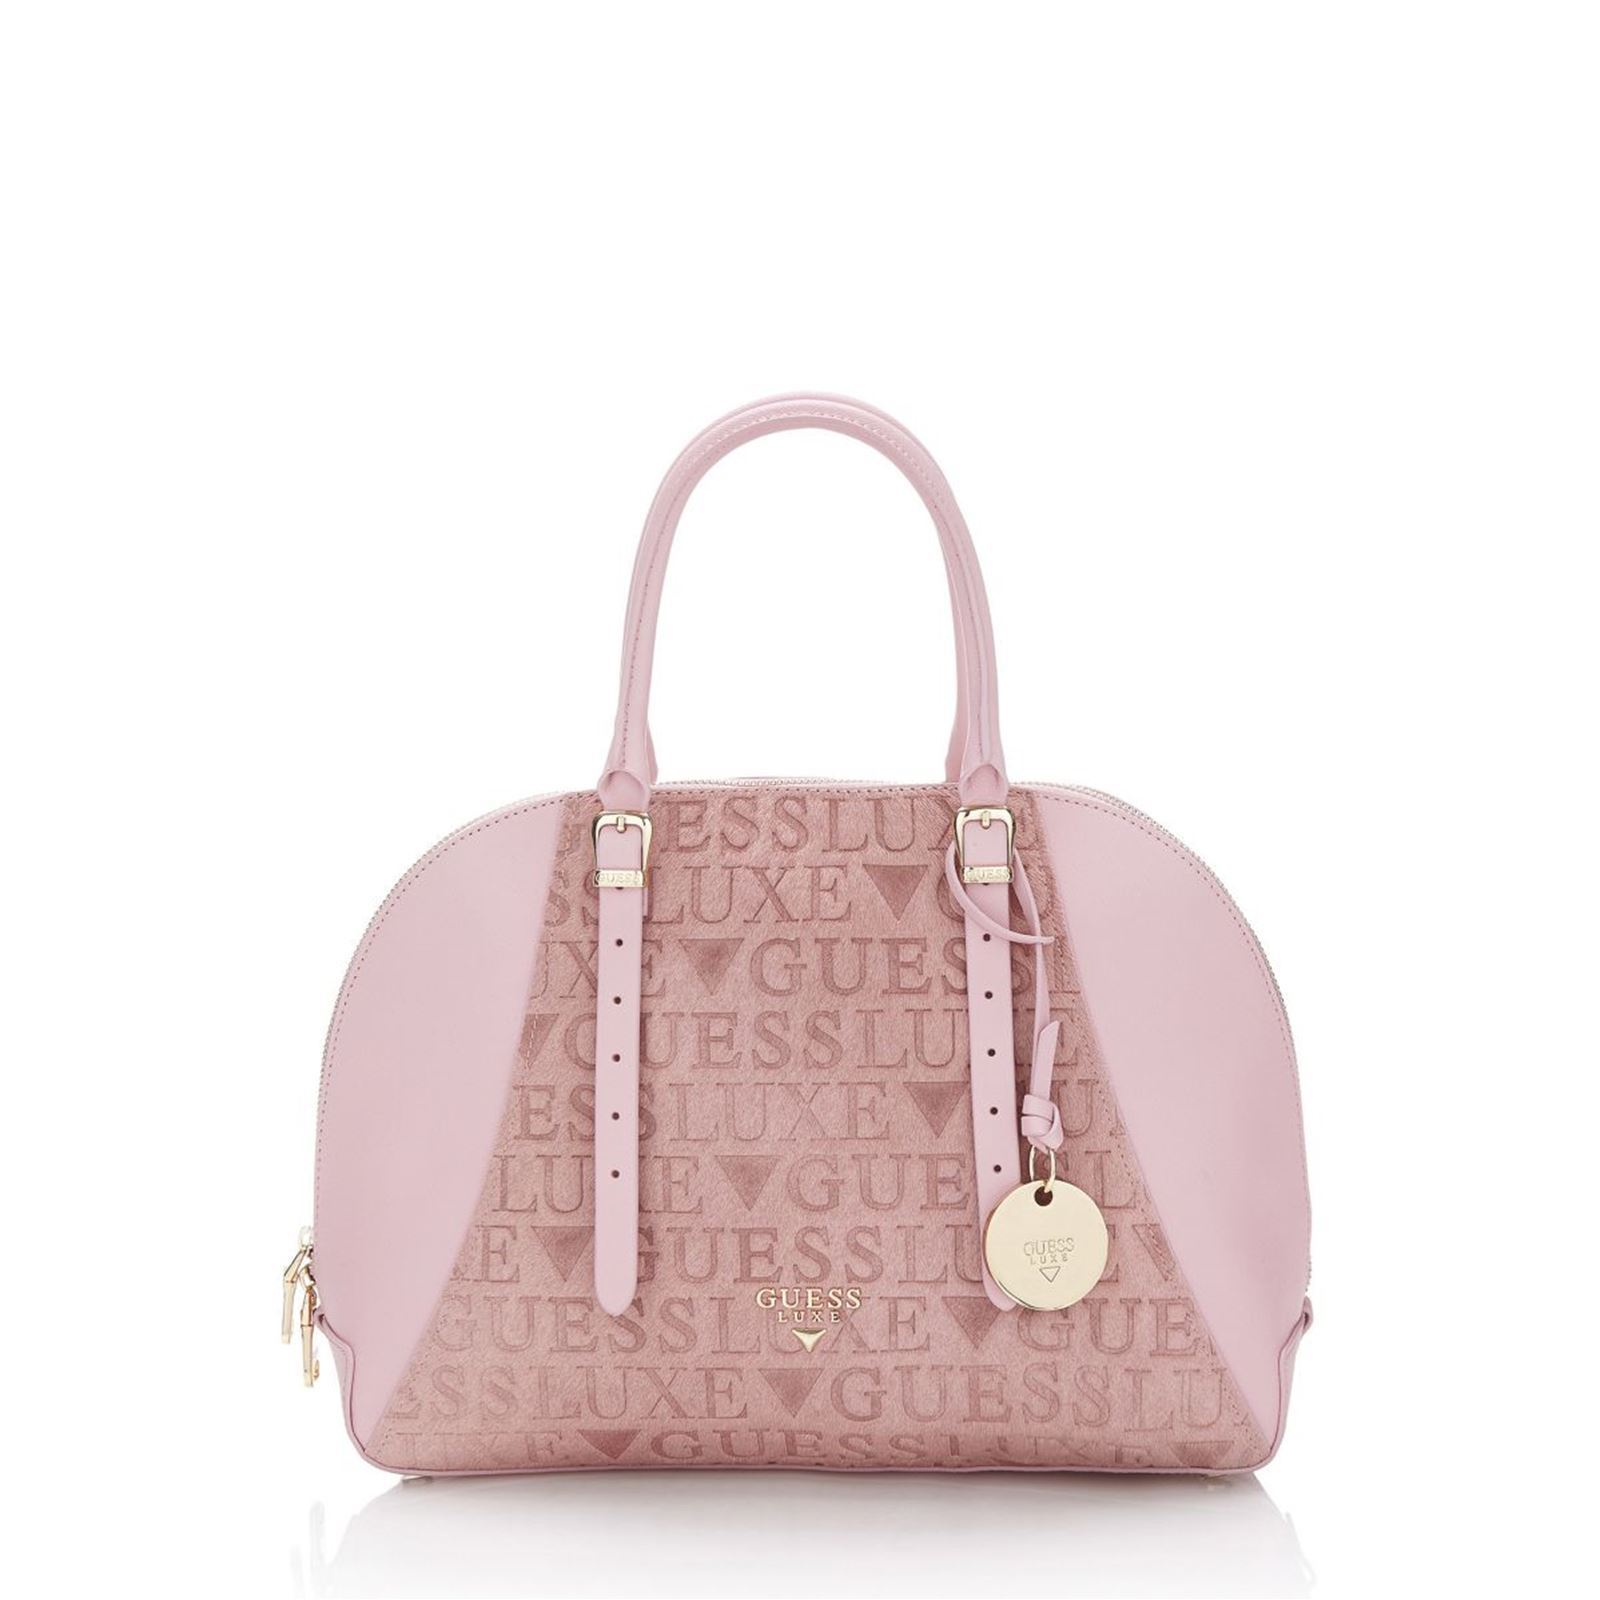 dcec59d6f4 Guess Lady luxe - Sac à main en cuir - rose | BrandAlley